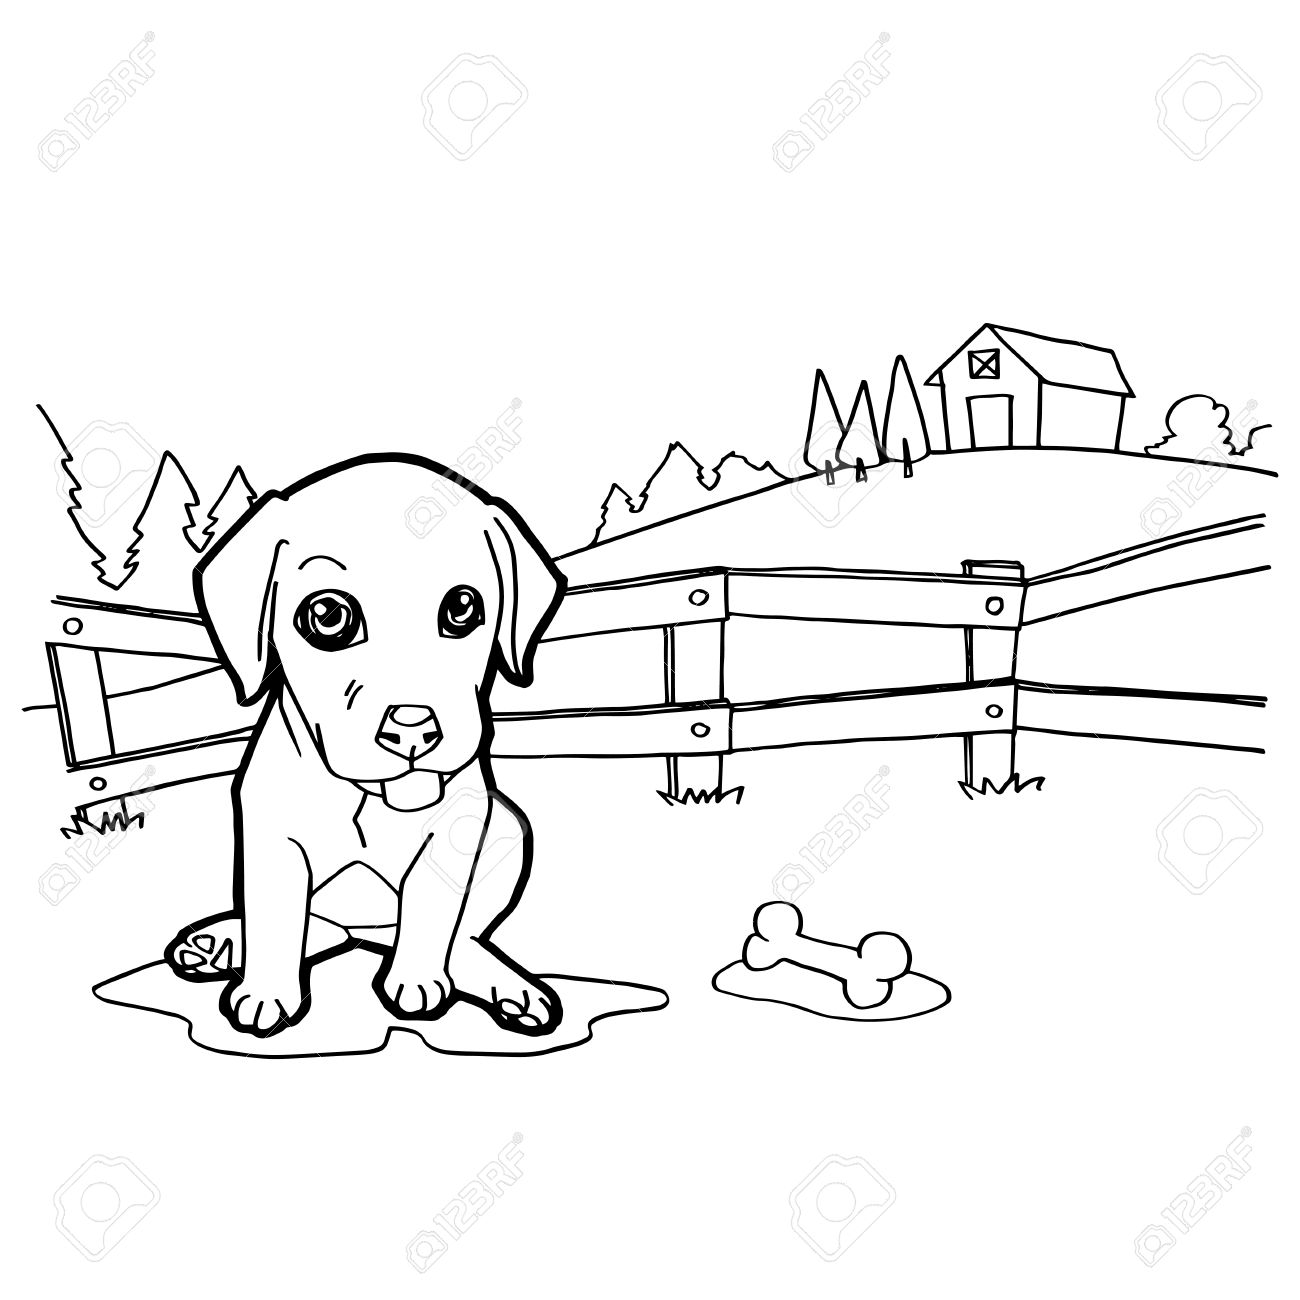 Coloring Book With Dog And Landscape Stock Vector